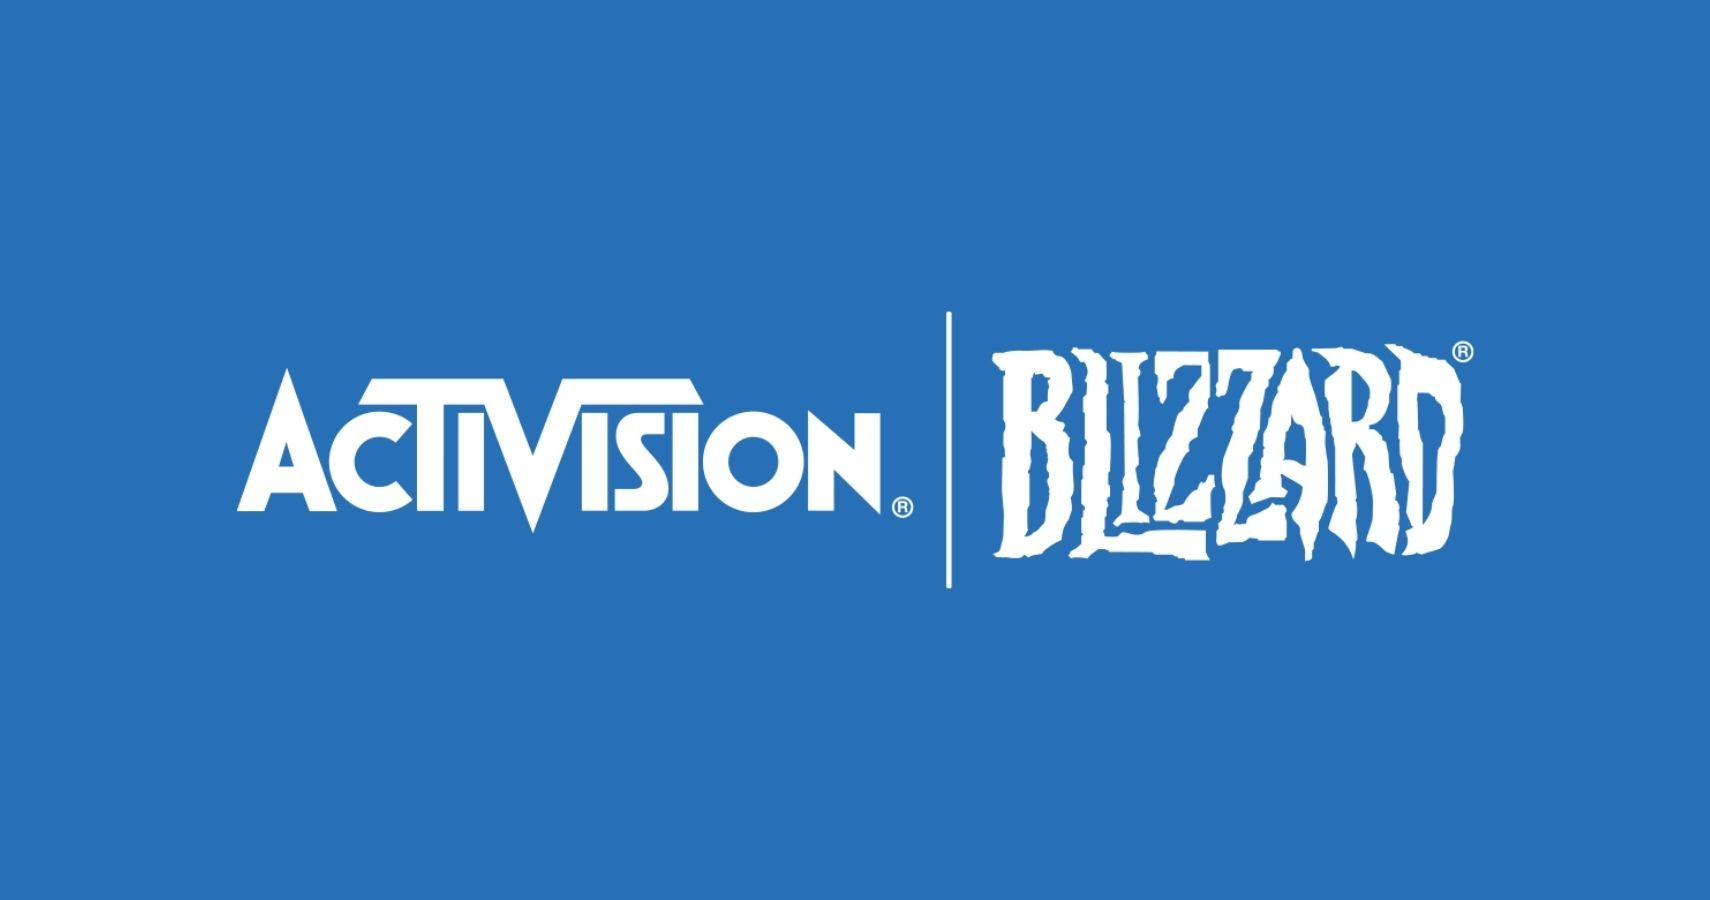 California Is Suing Activision Blizzard Over An Alleged 'Frat Boy' Culture